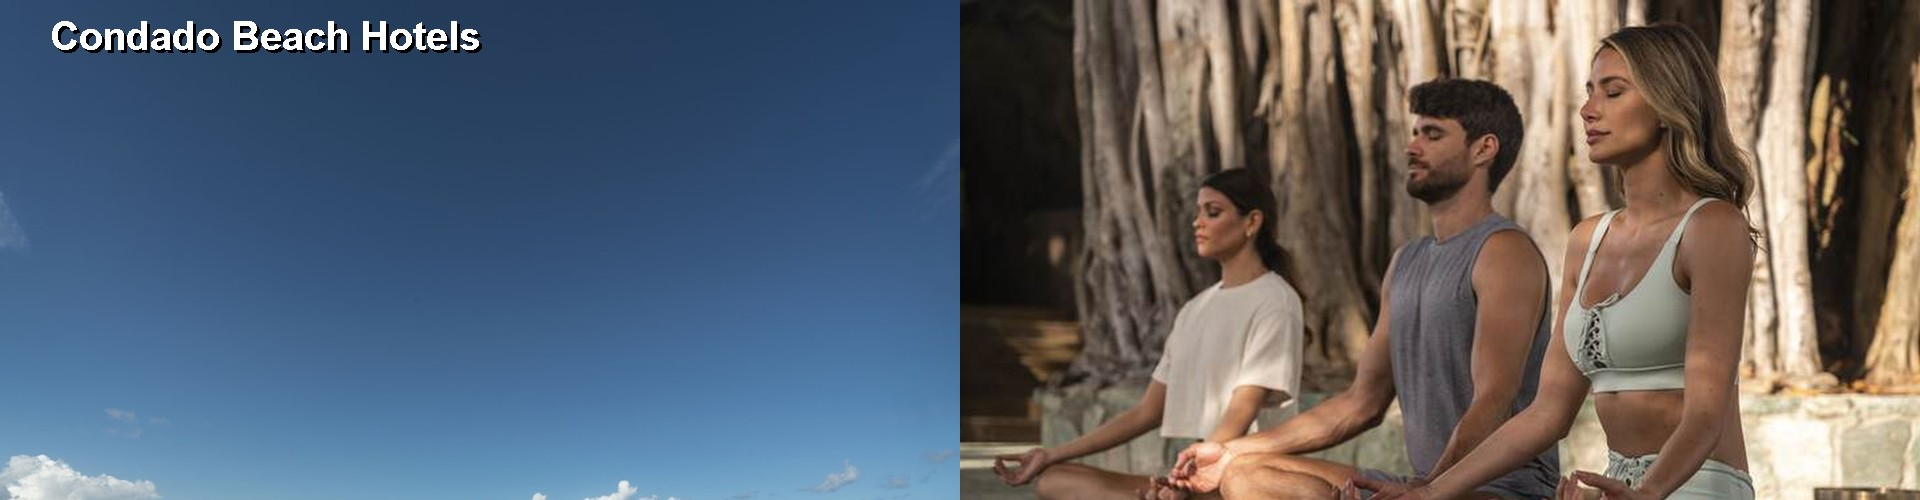 5 Best Hotels near Condado Beach